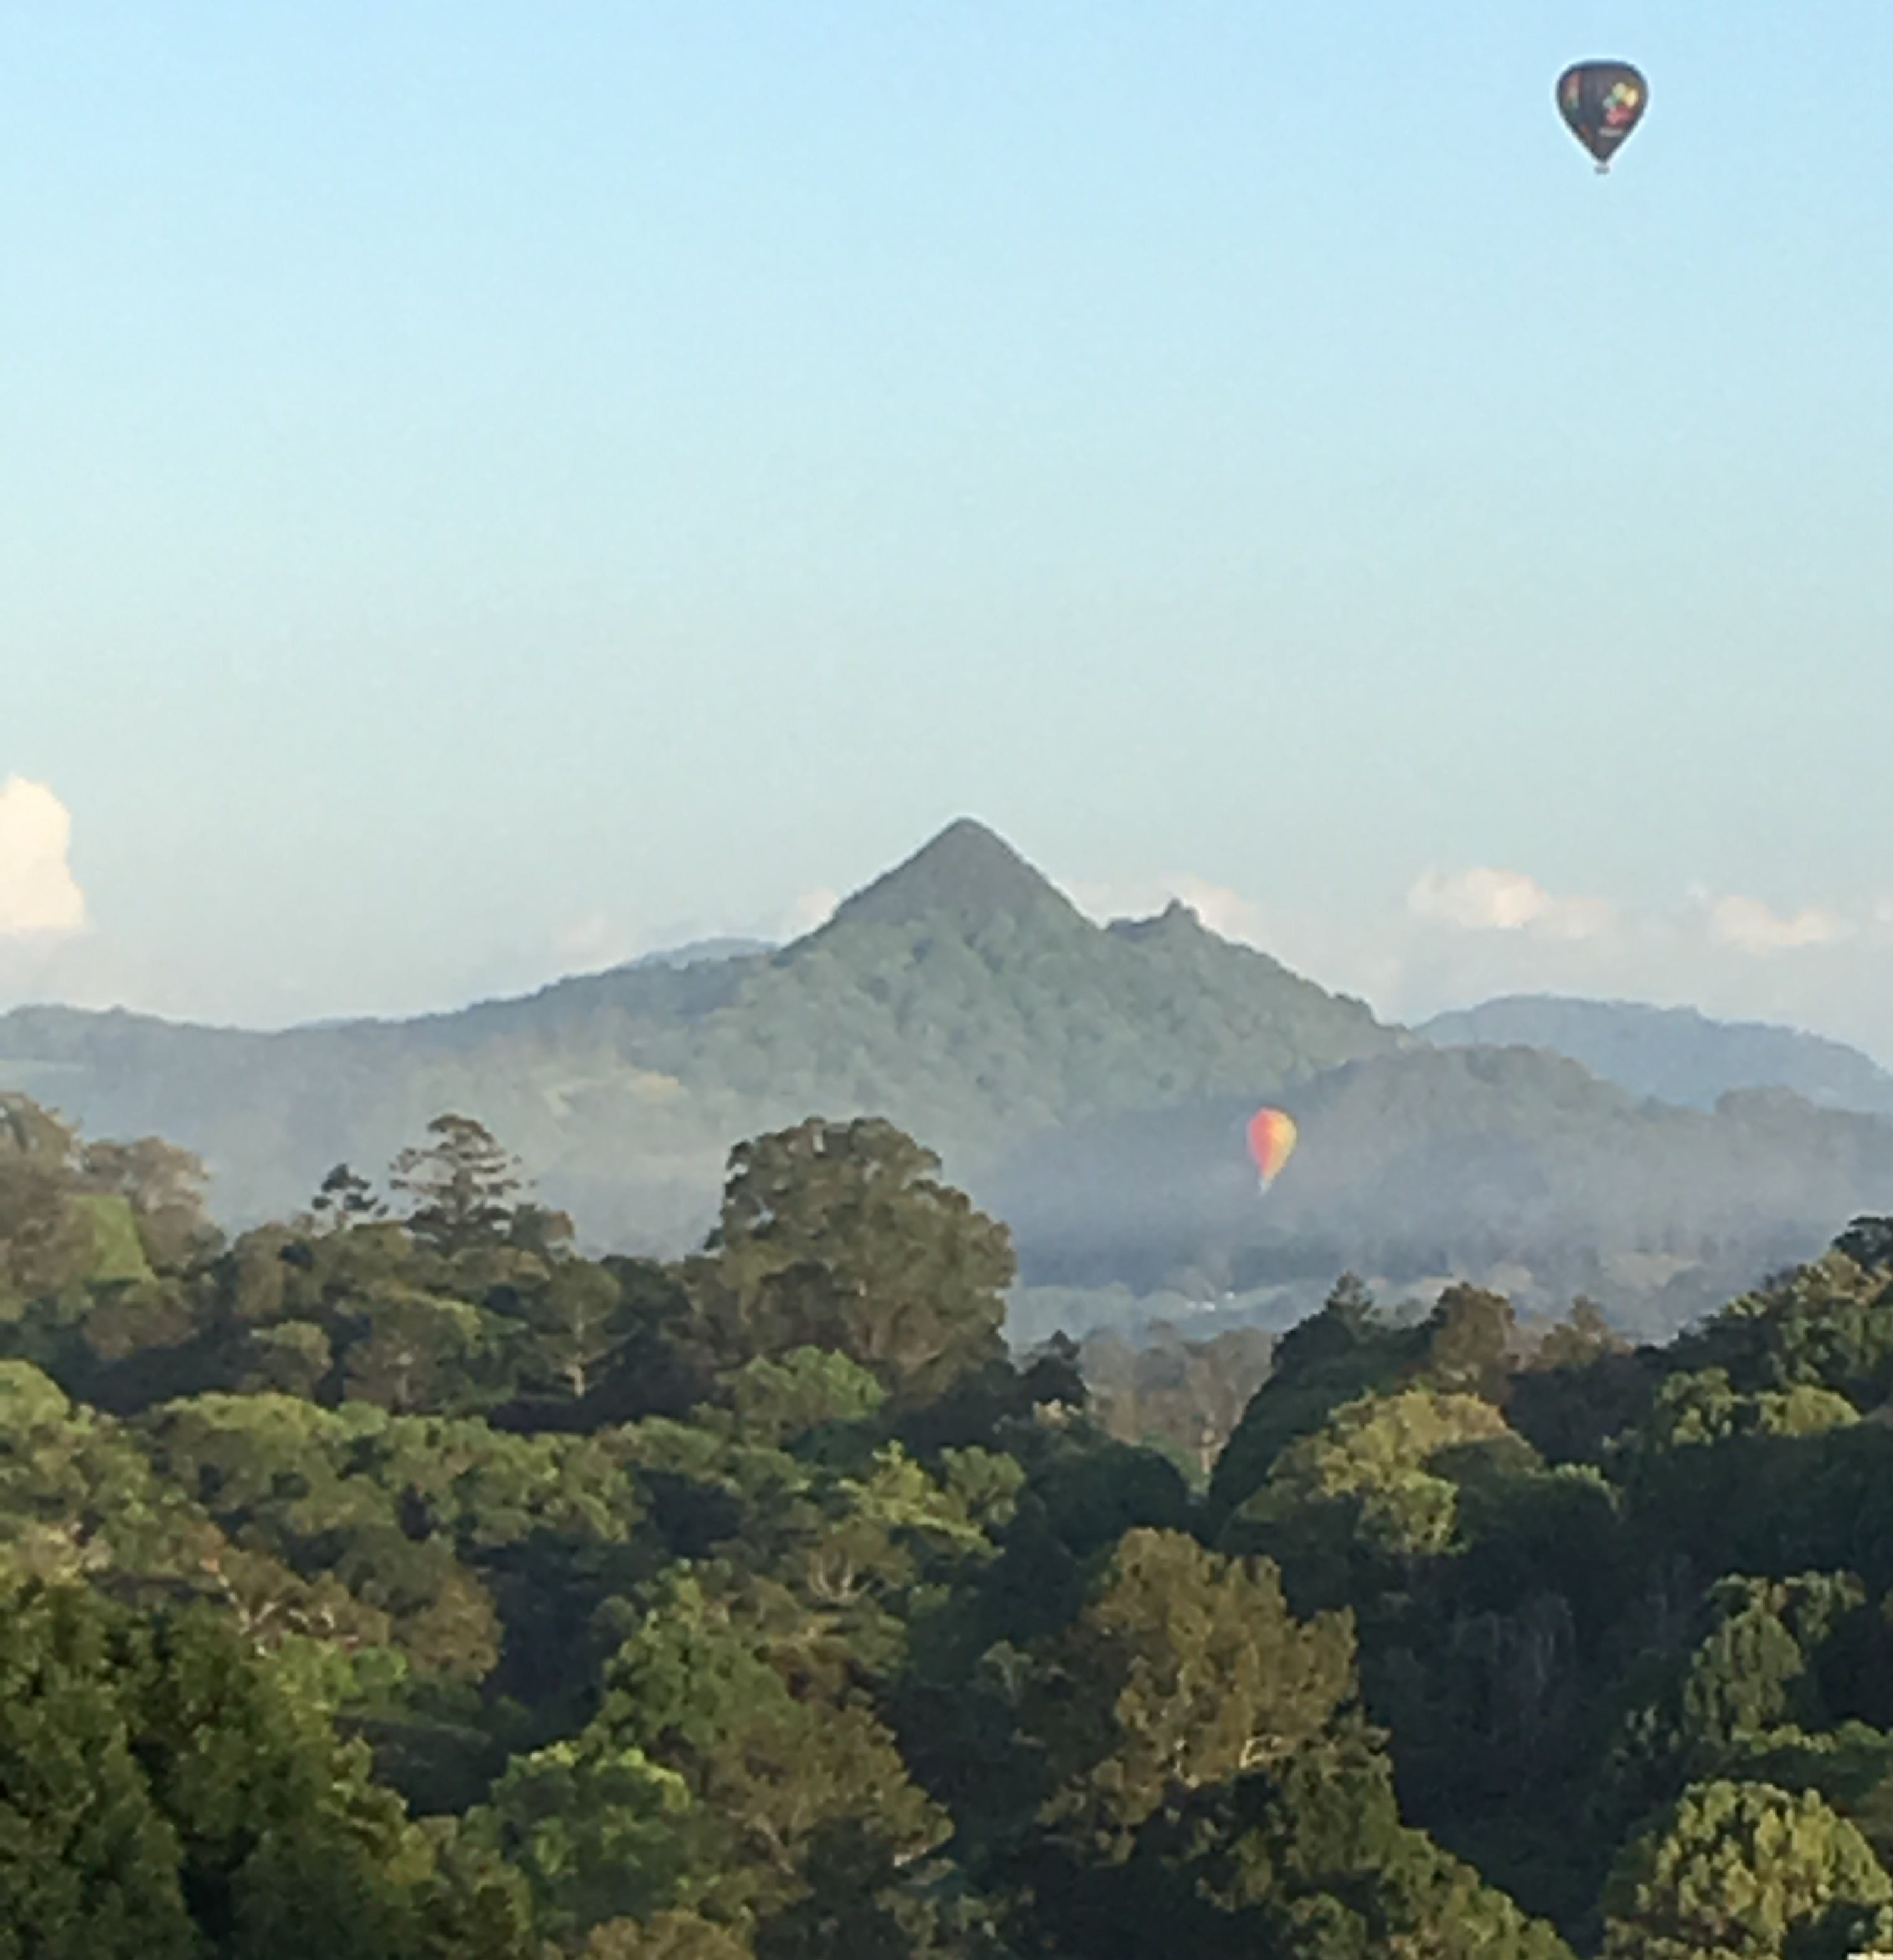 Ballooning over Mount Chincogan